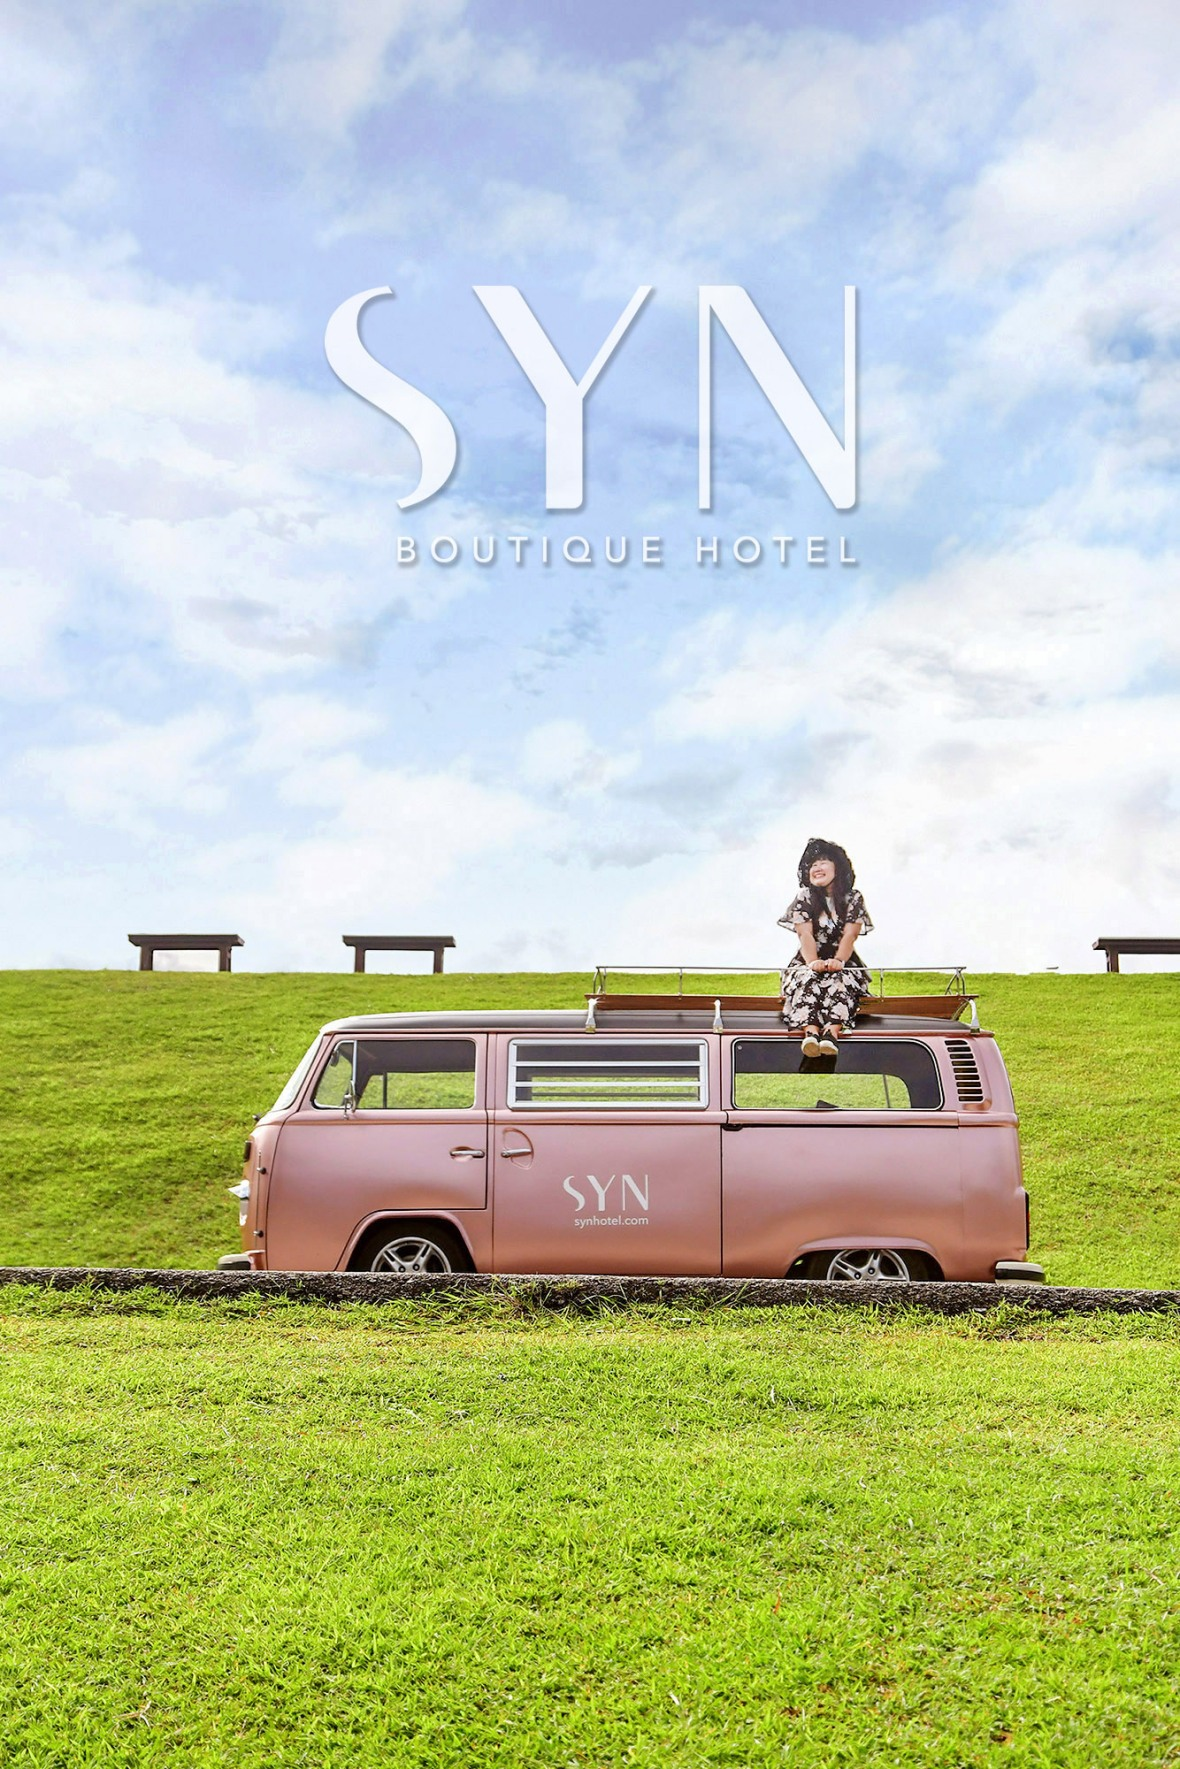 SYN Boutique hotel (1)